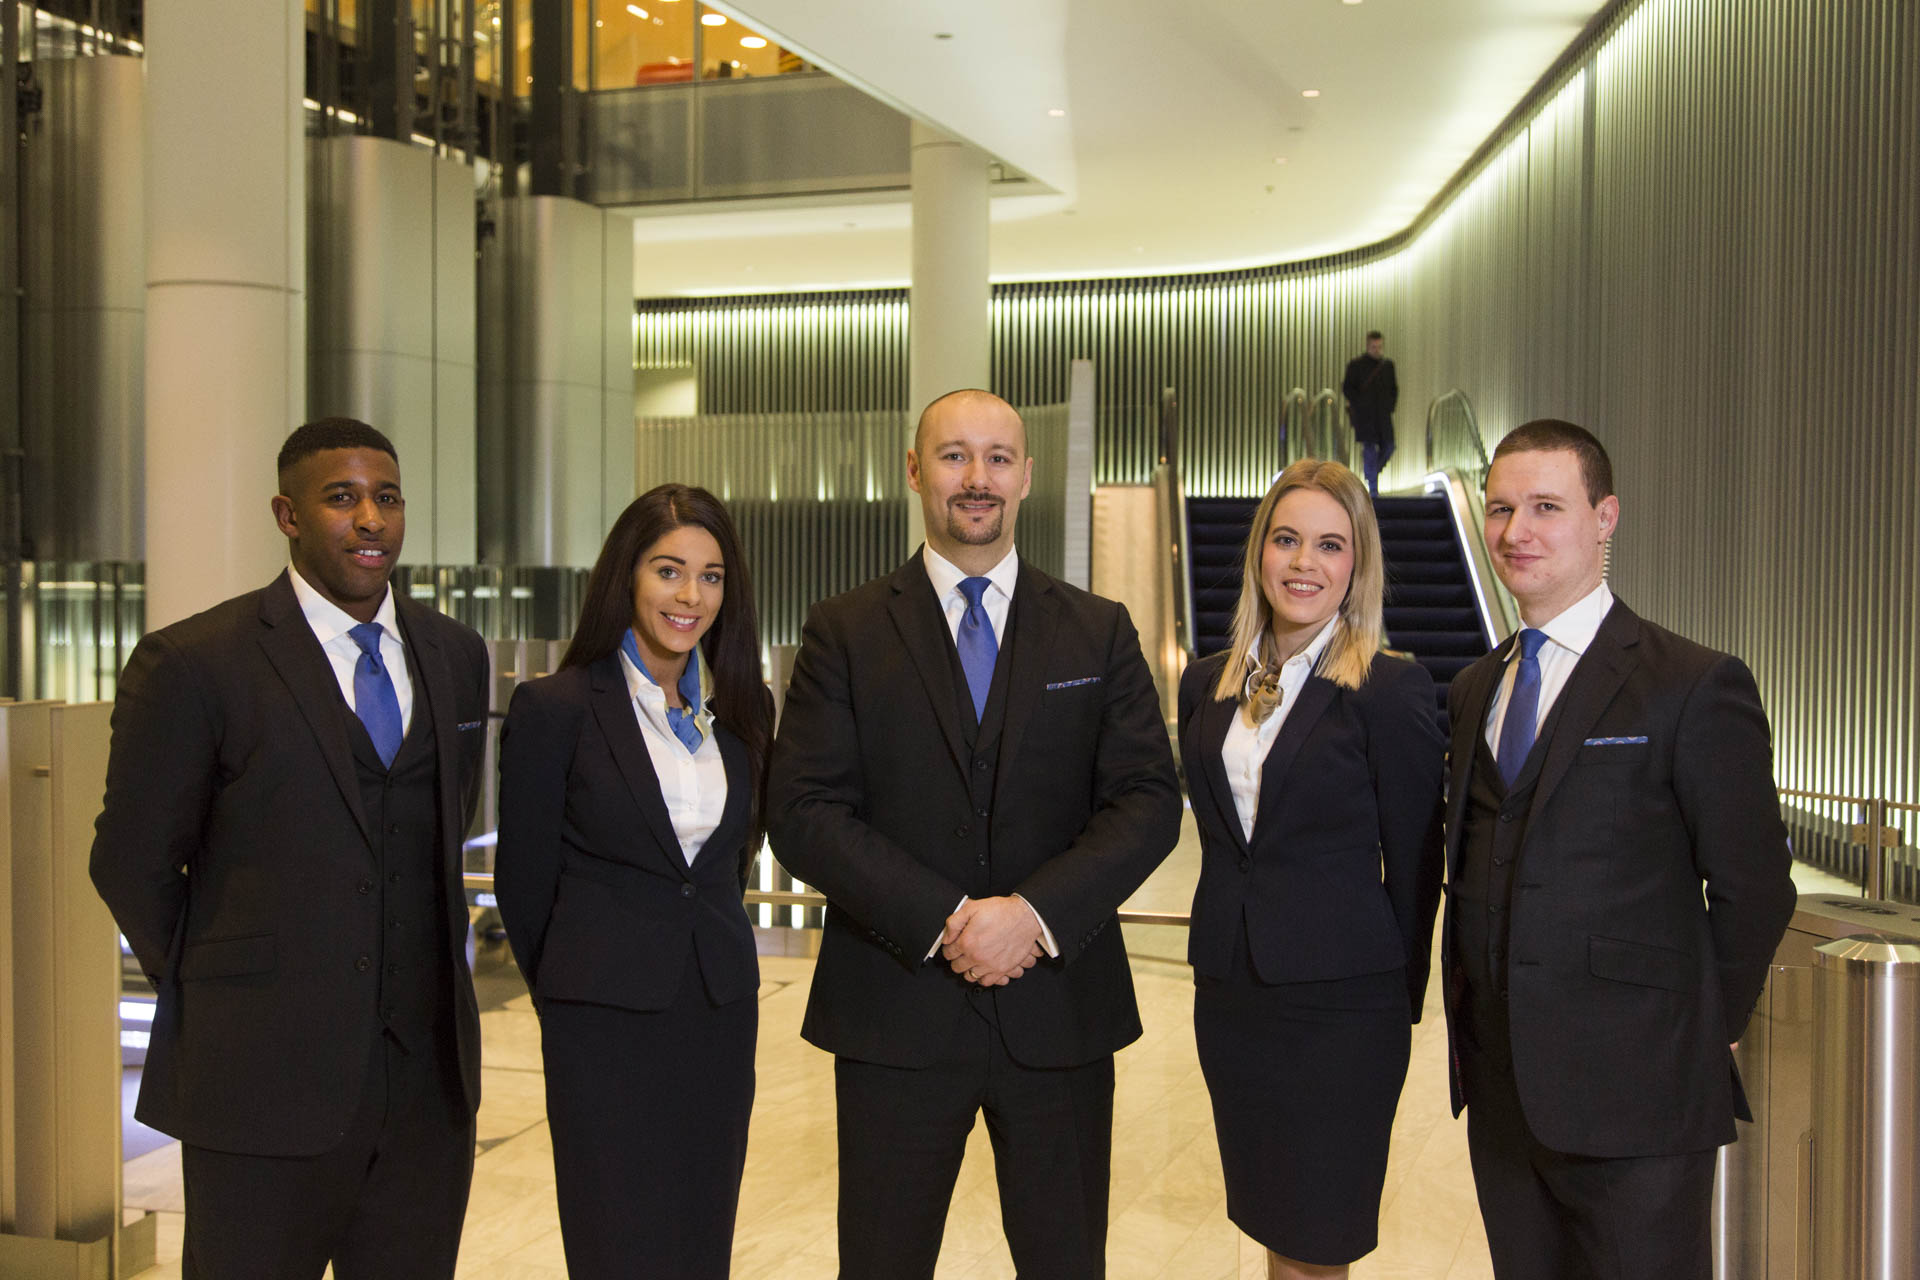 Corporate Staff Photography on Location